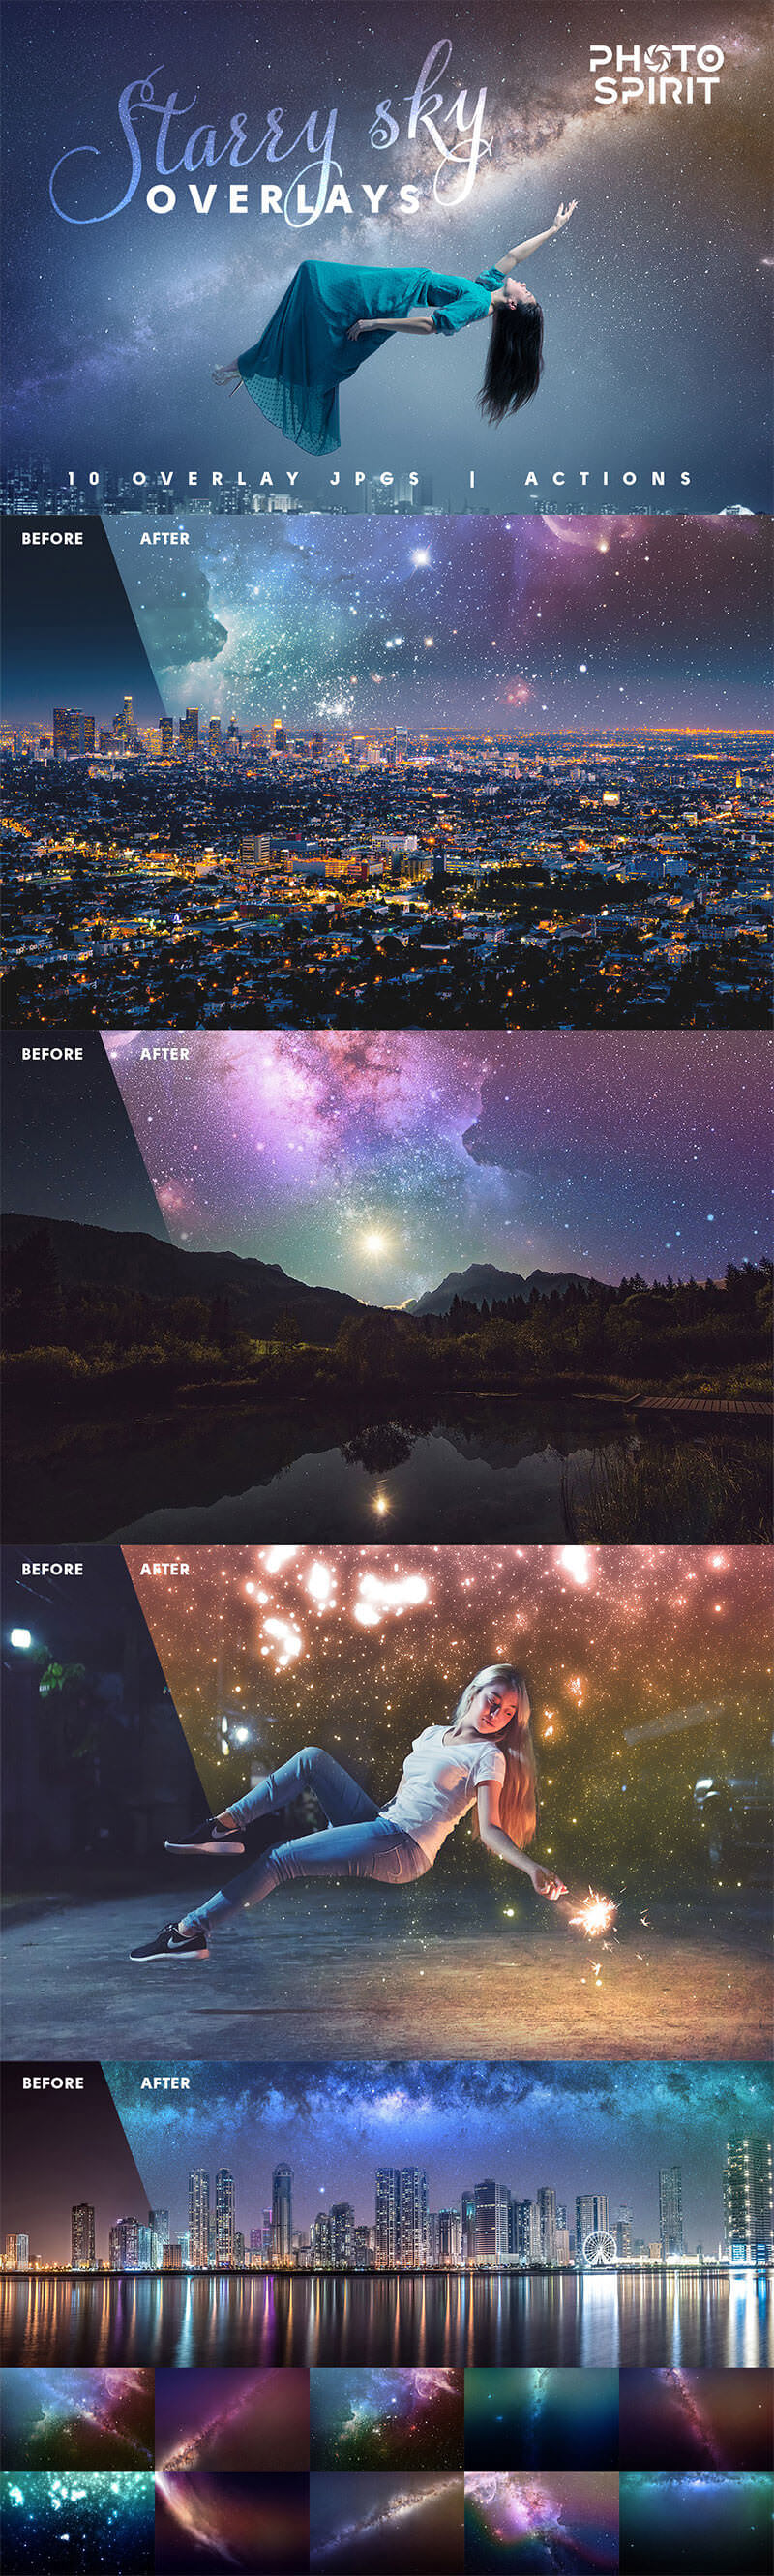 ultimate-essential-photography-bundle-014-g